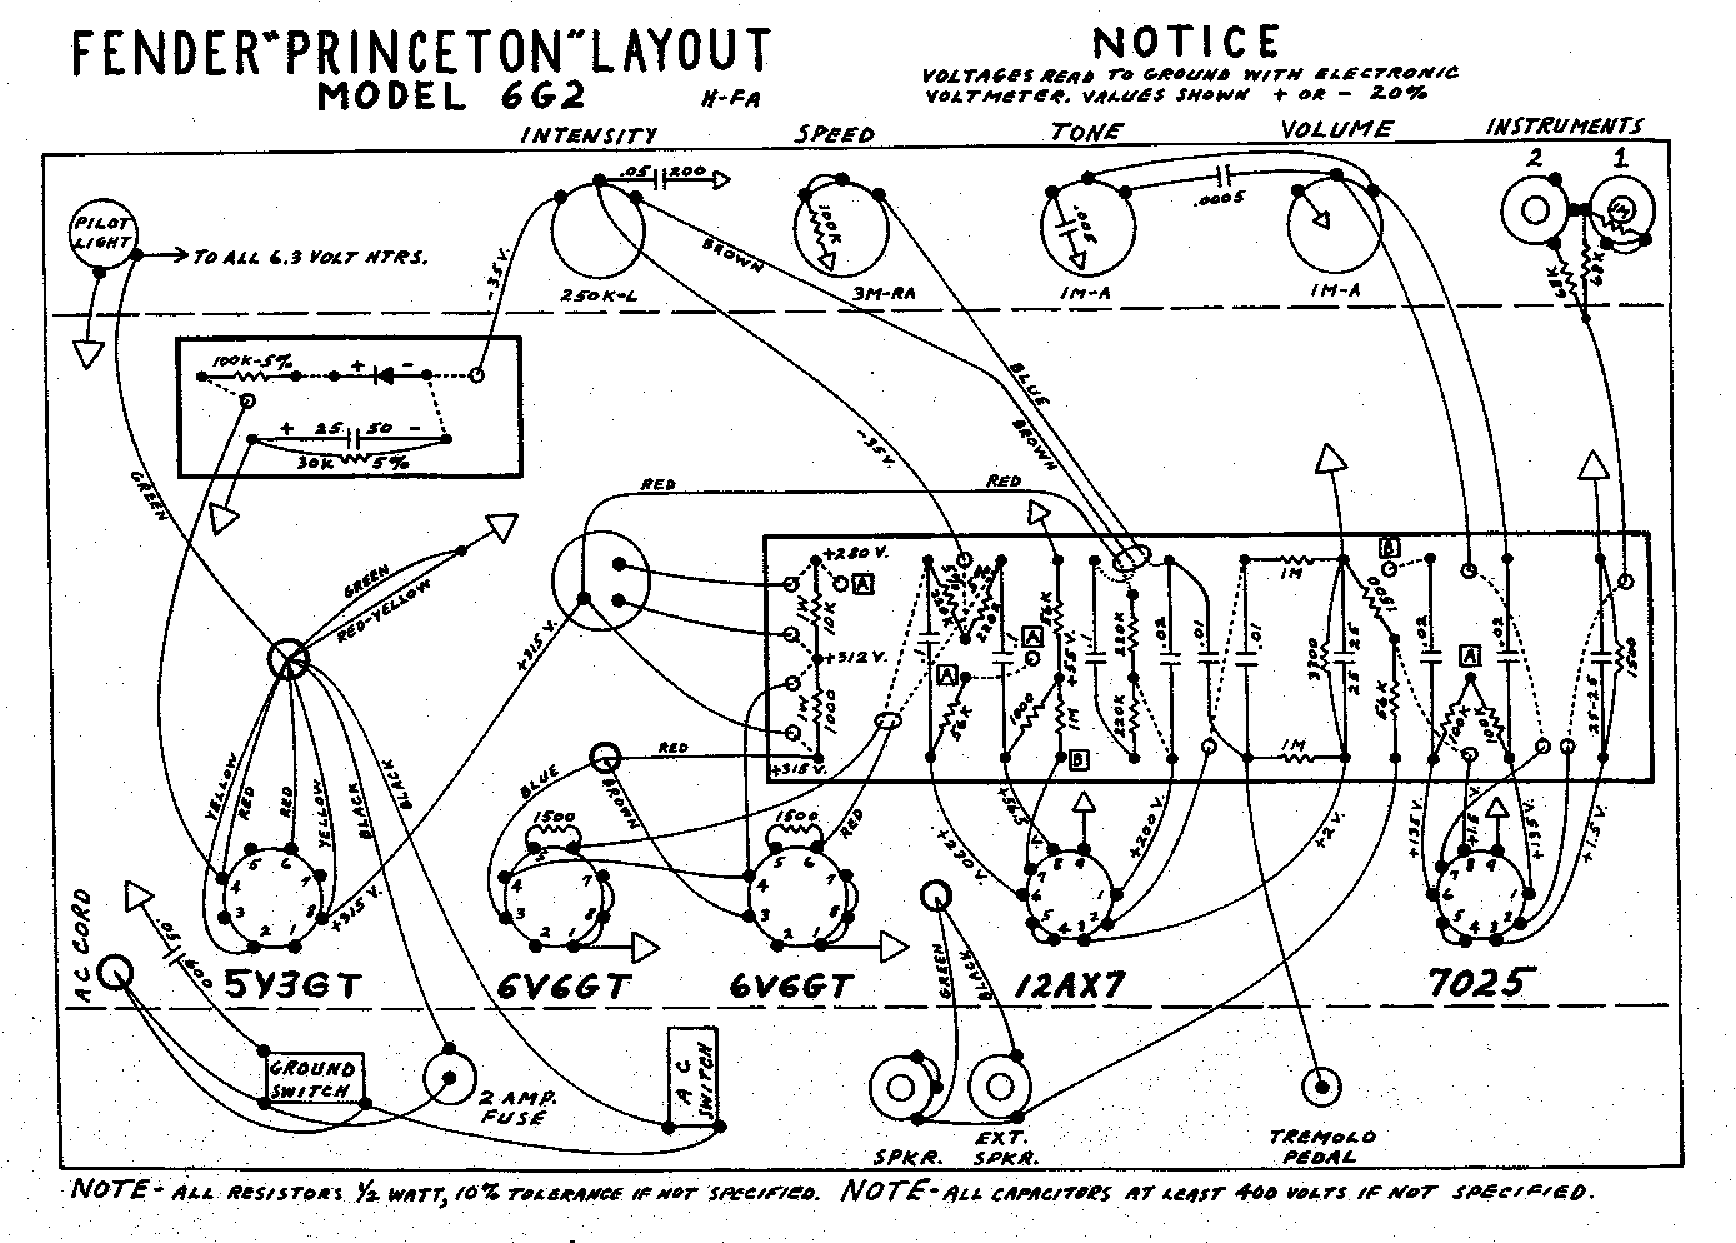 FENDER PRINCETON-6G2-LAYOUT Service Manual download